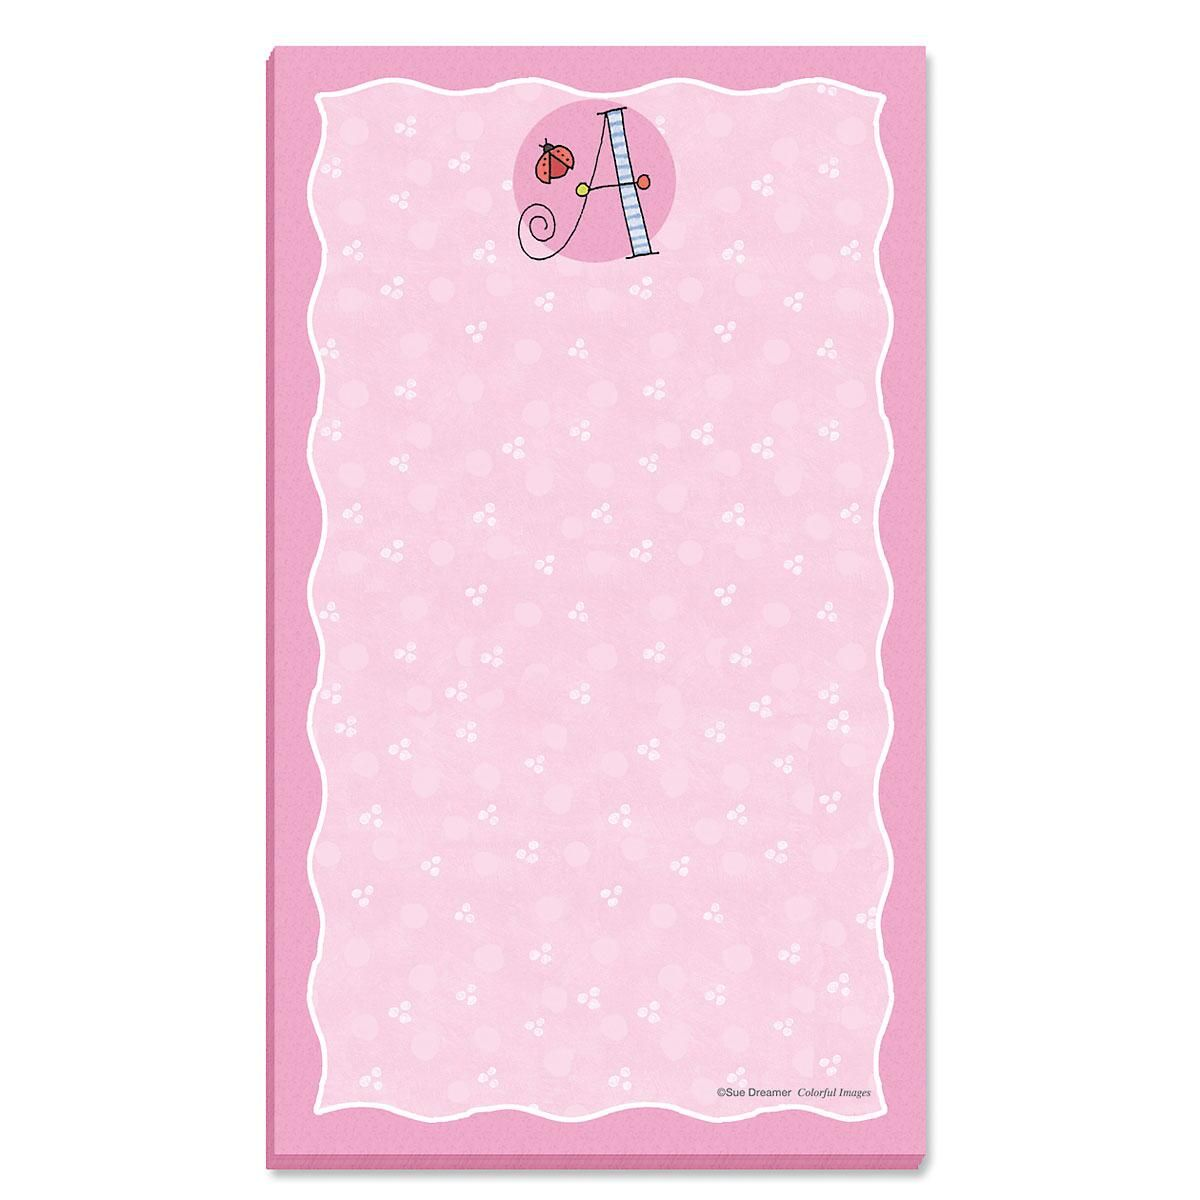 Sue Dreamer Initial Notepad